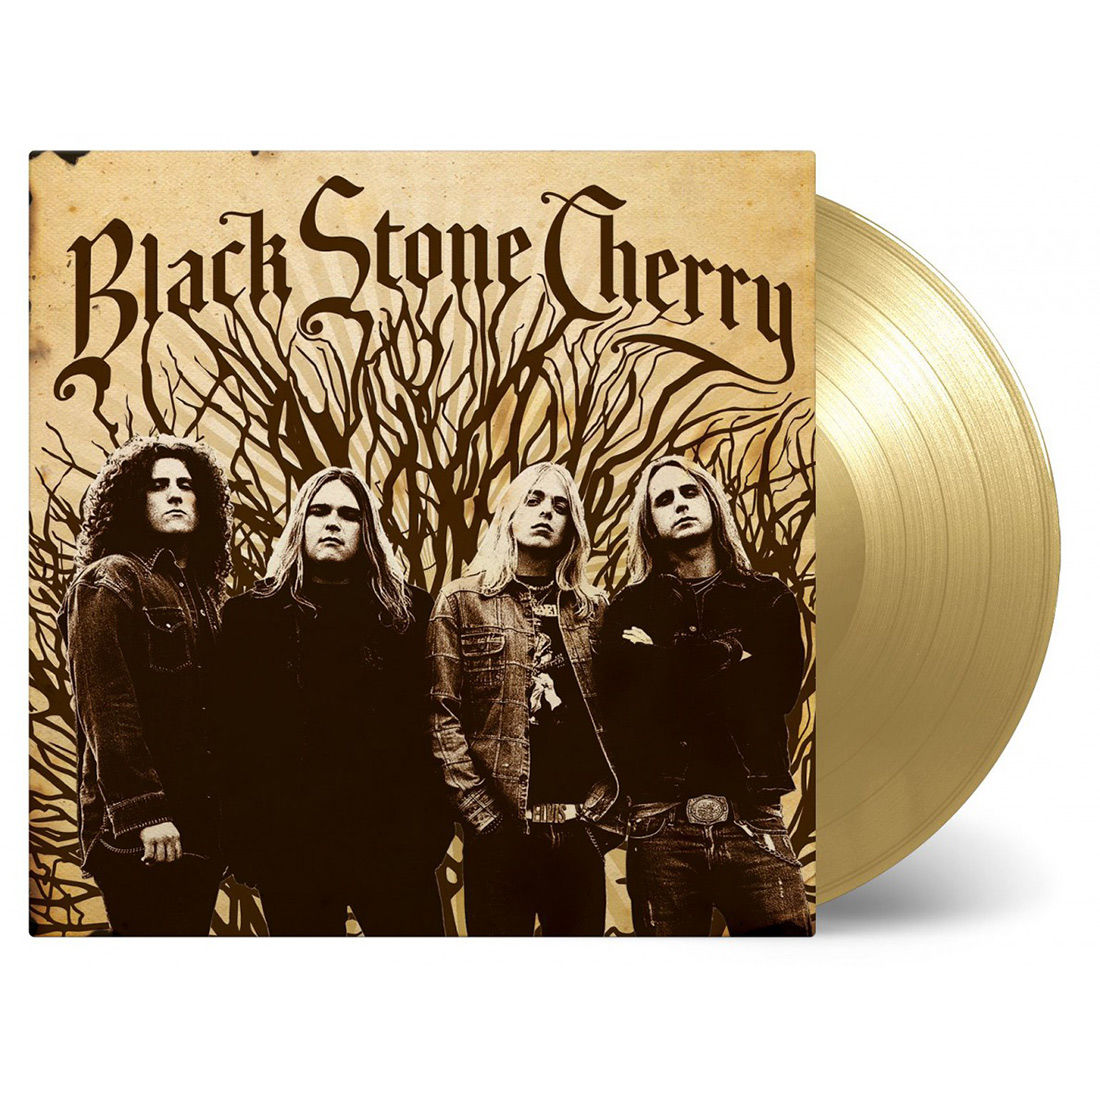 Black Stone Cherry – Black Stone Cherry Limited Edition Gold Vinyl Individually Numbered 2500 Made